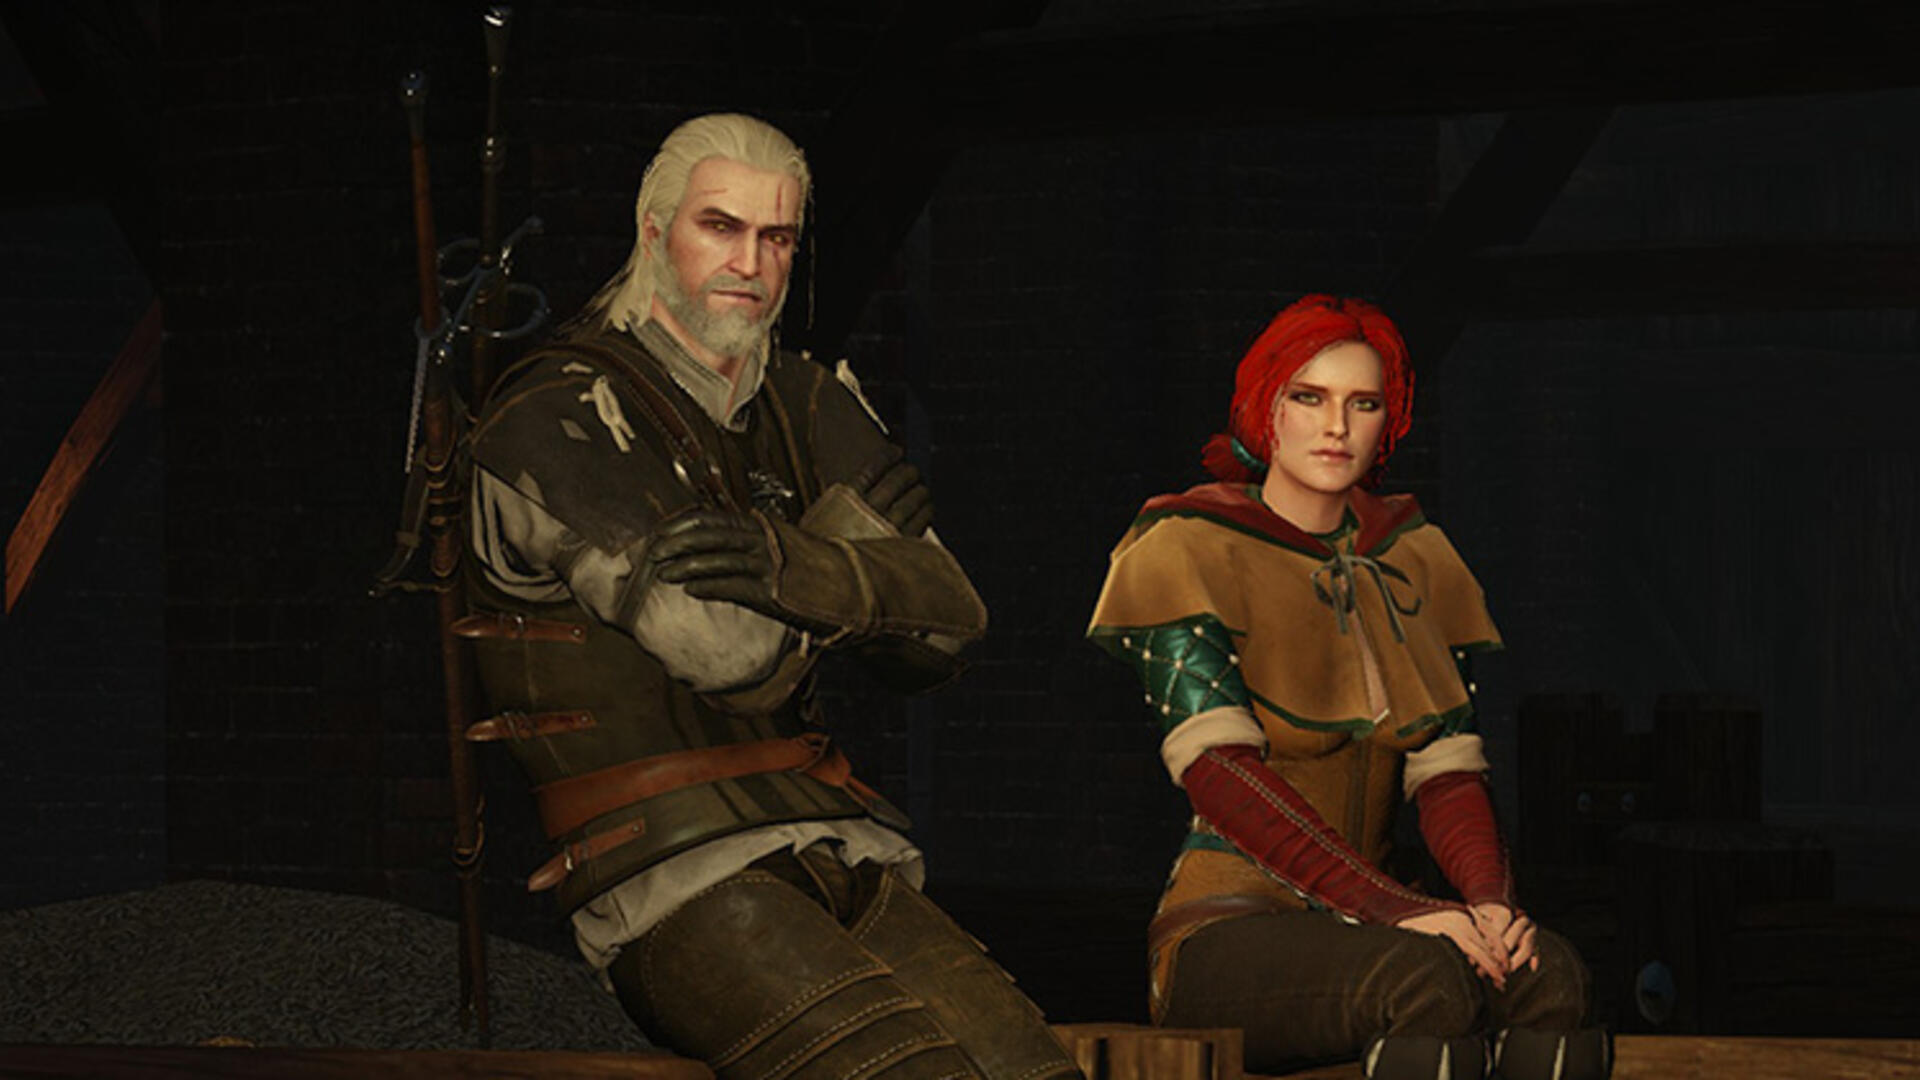 The Witcher 3: All Novigrad Side Quests - Now or Never, A